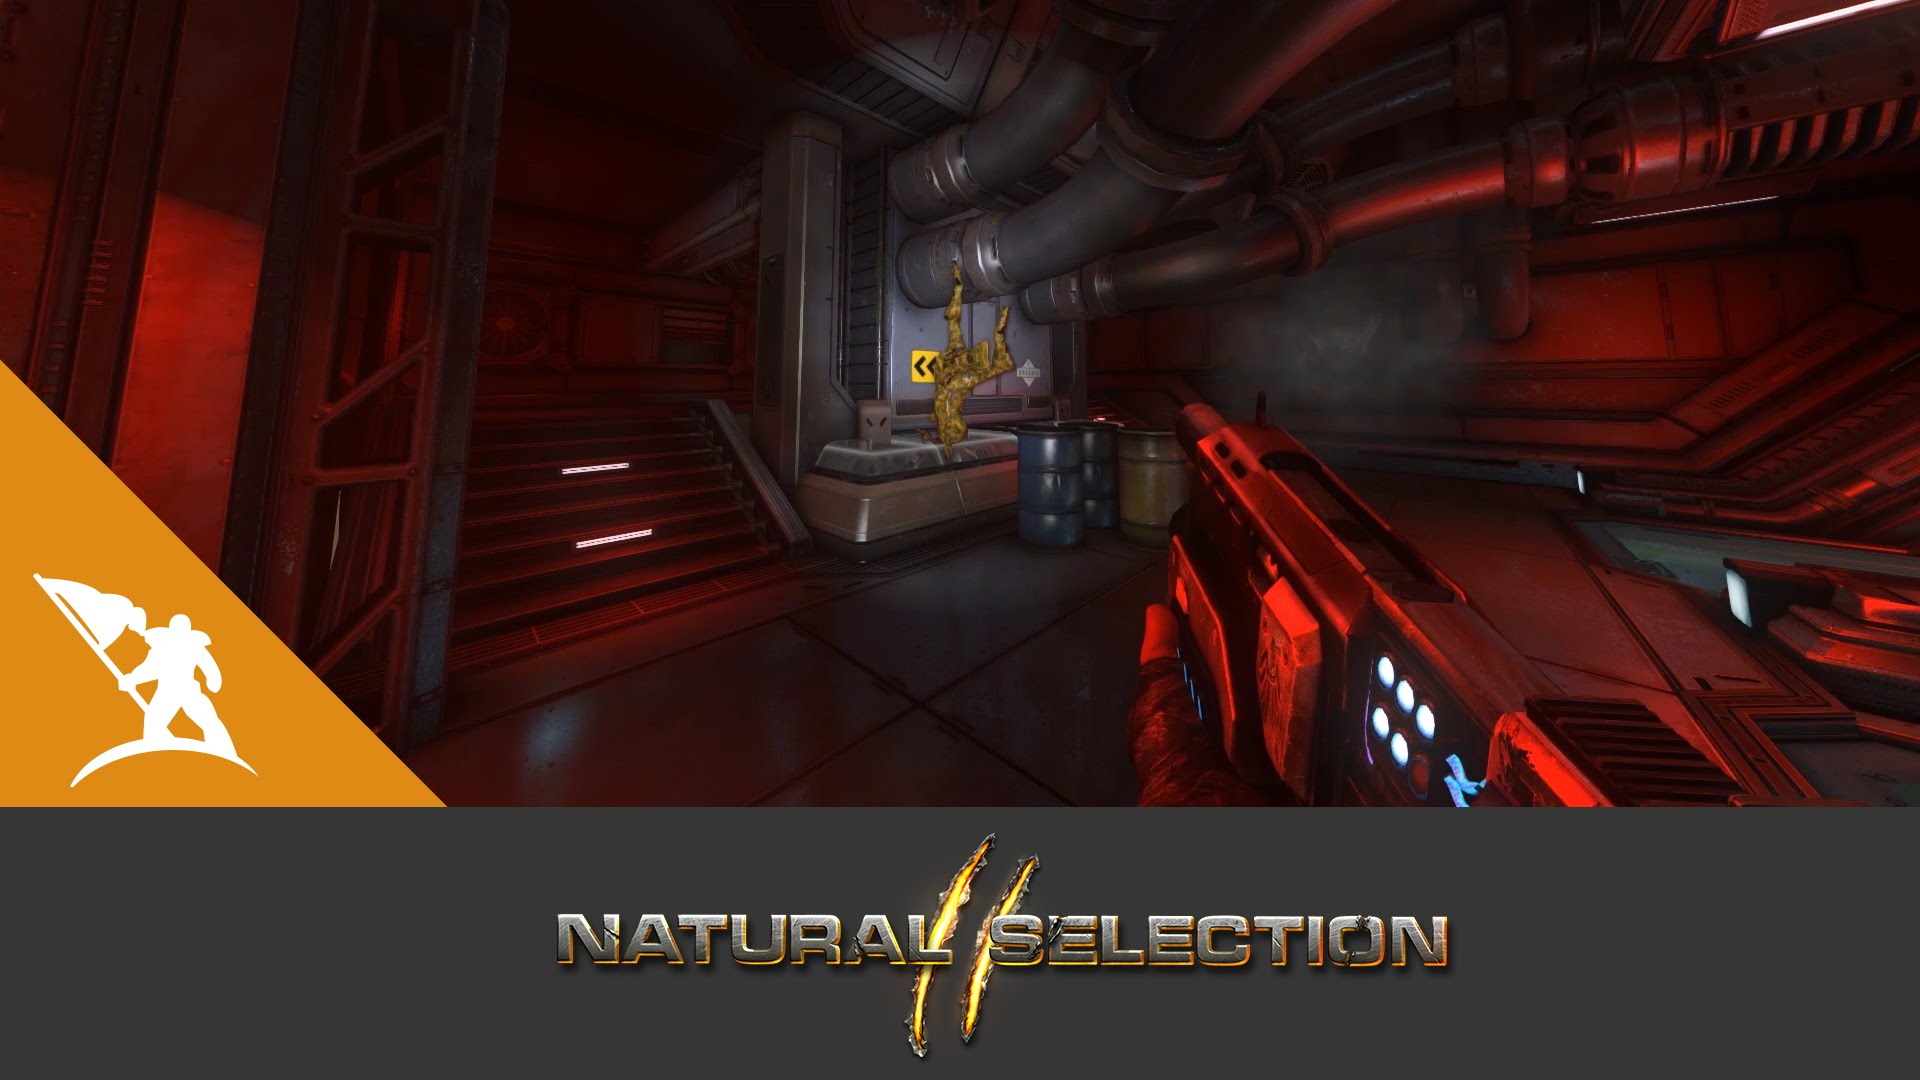 Natural Selection 2 Development Recap: June 2016